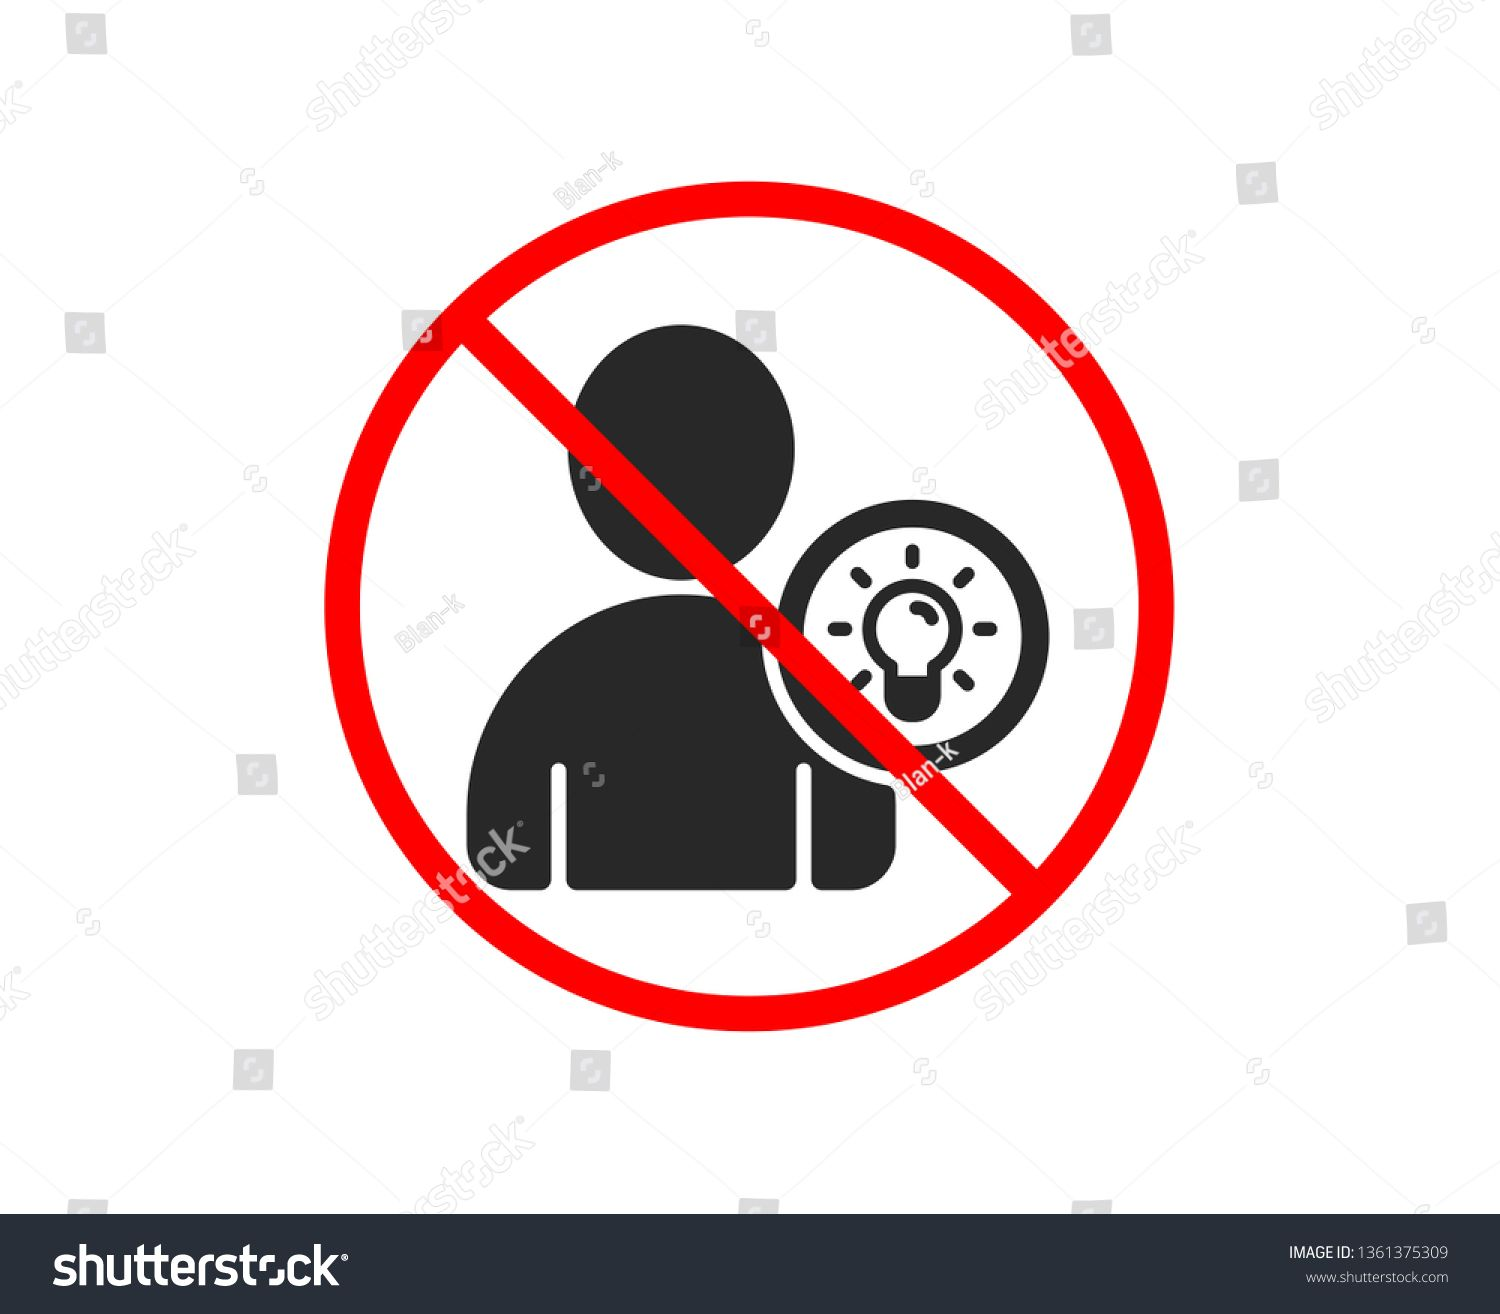 No Or Stop User Icon Profile With Lamp Bulb Sign Person Silhouette With Idea Symbol Prohibited Ban Stop Symbol No In 2020 Person Silhouette City Illustration Icon